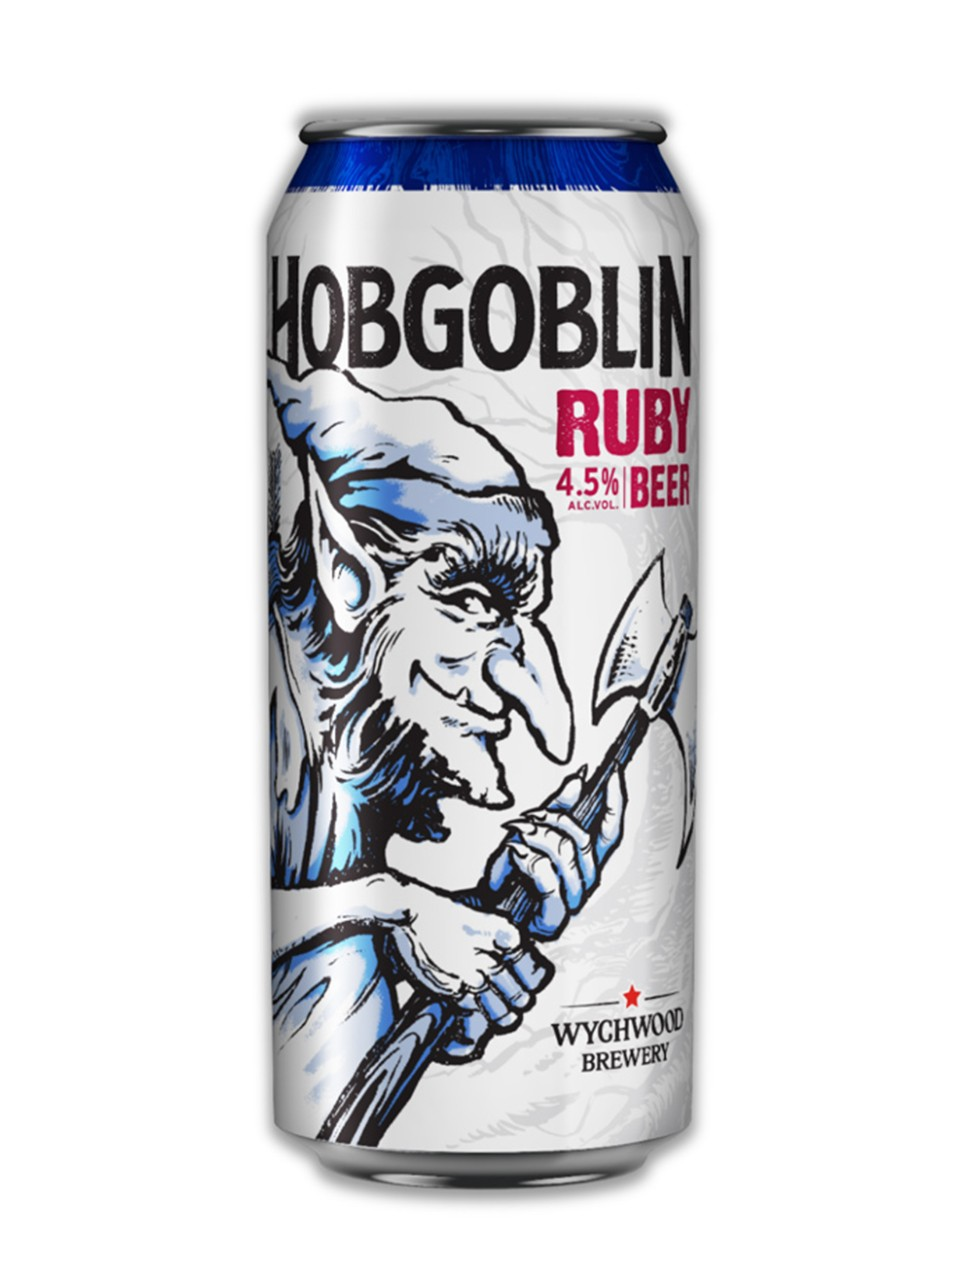 Hobgoblin Ale from LCBO